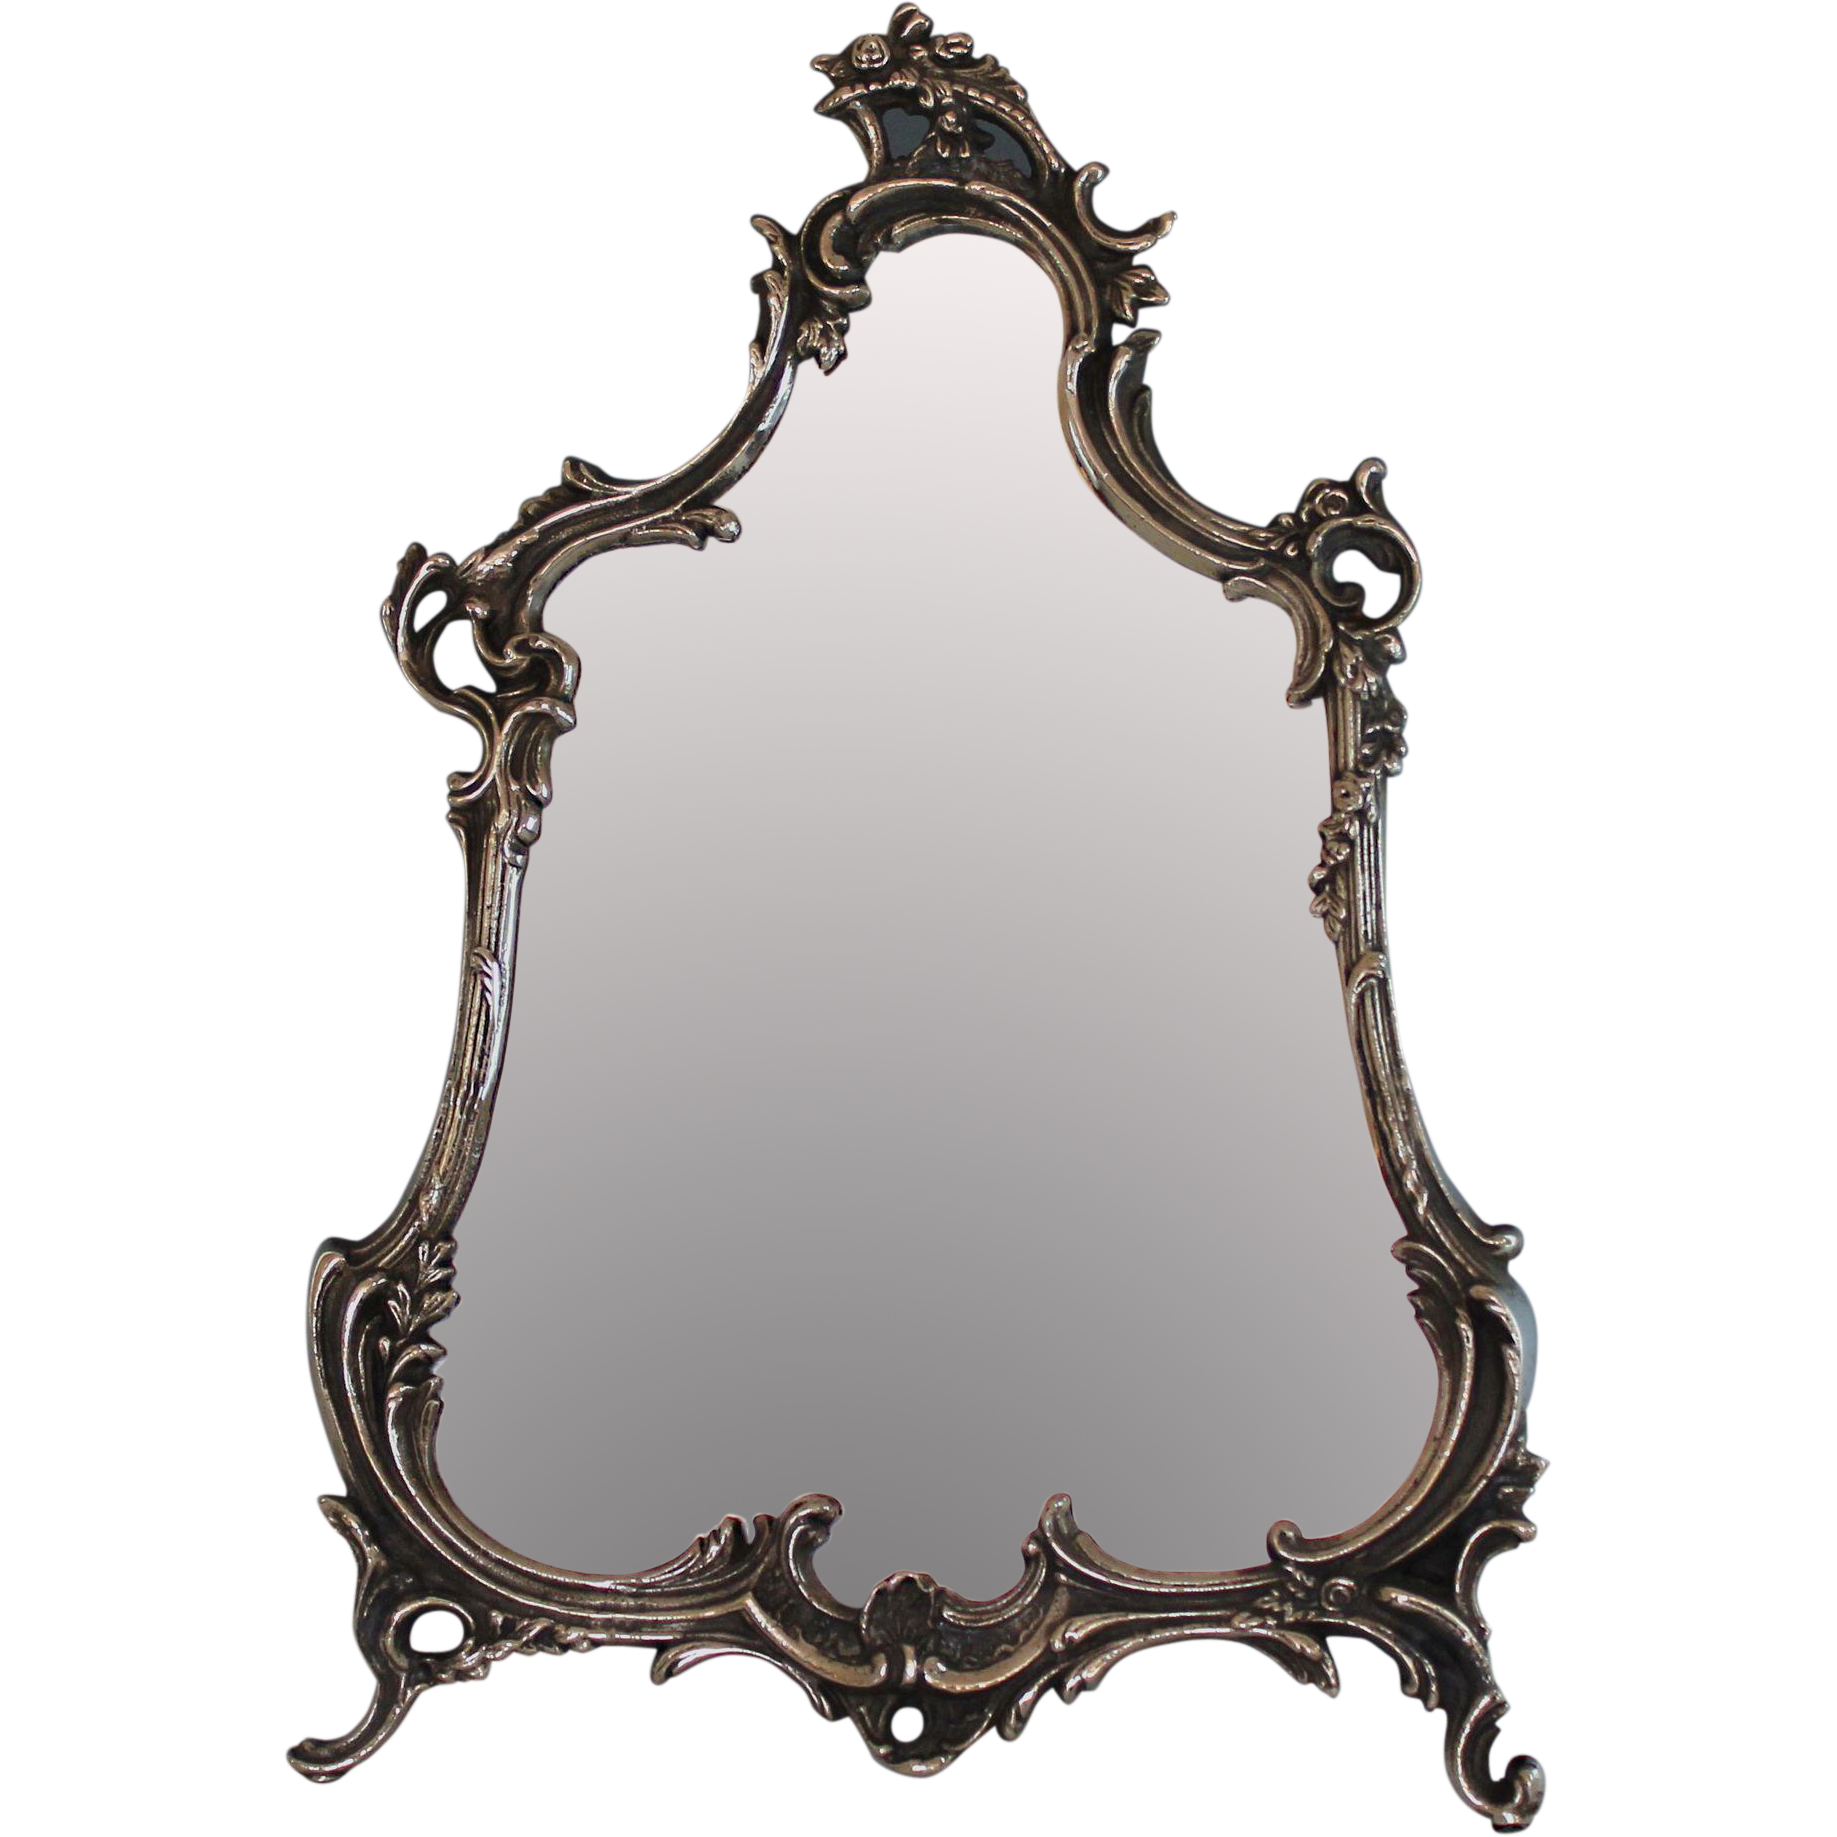 jpg freeuse library transparent mirrors ornate #106118943